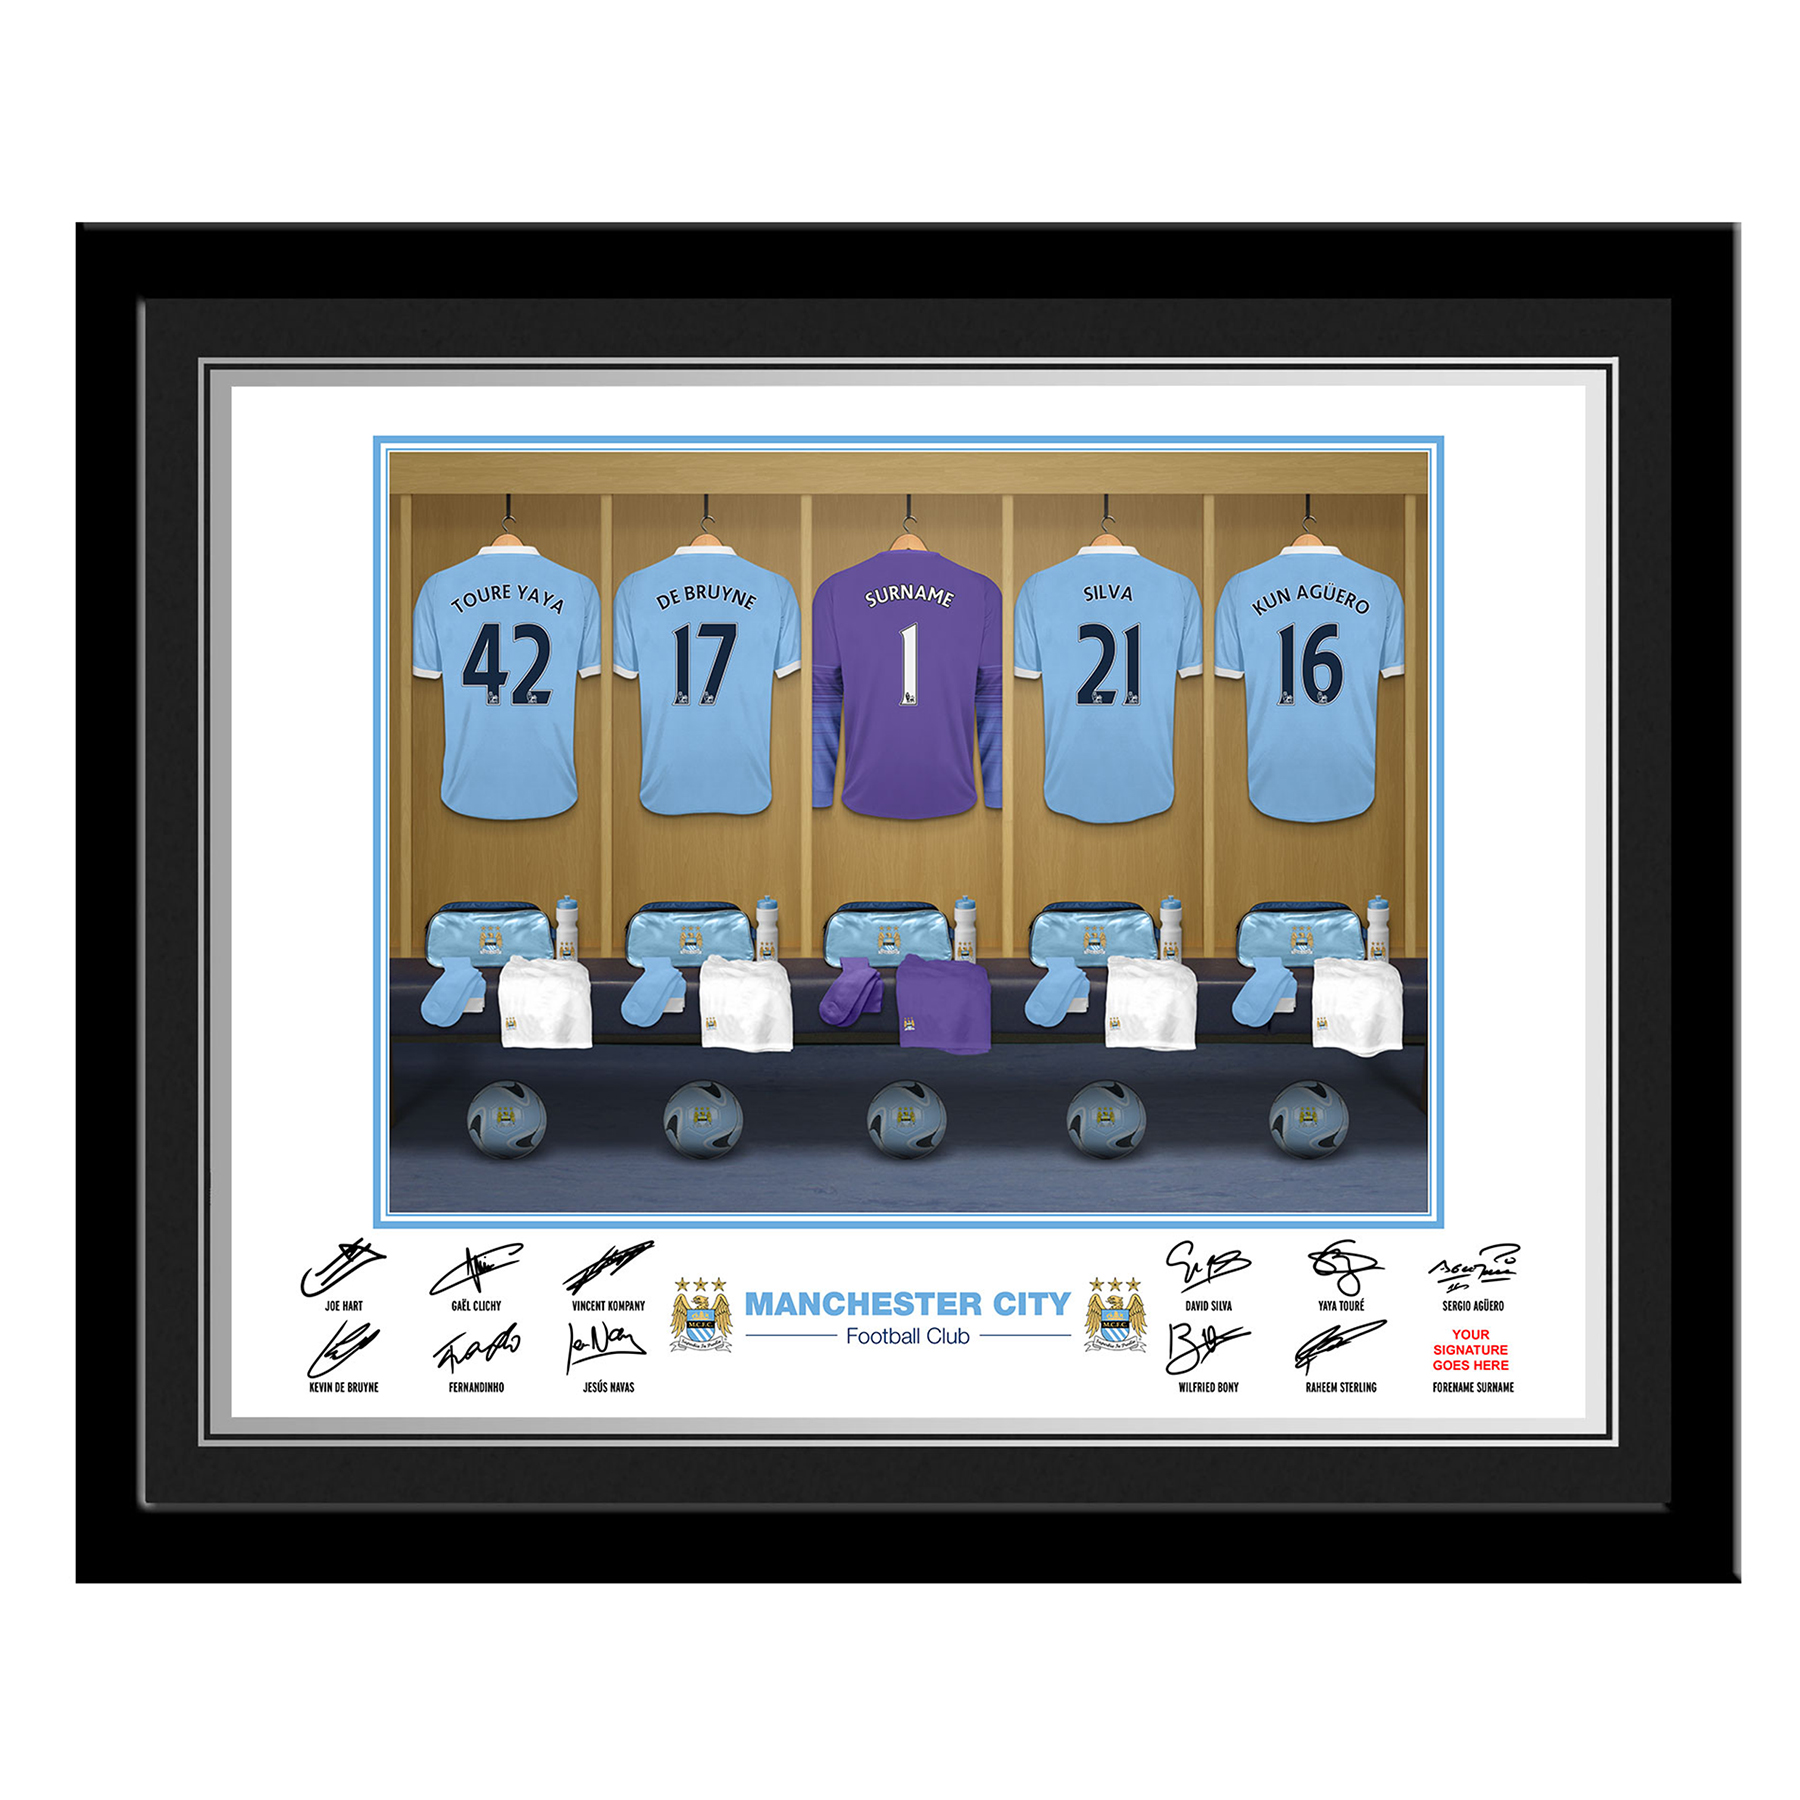 Manchester City Personalised Goal Keeper Dressing Room Photo Framed